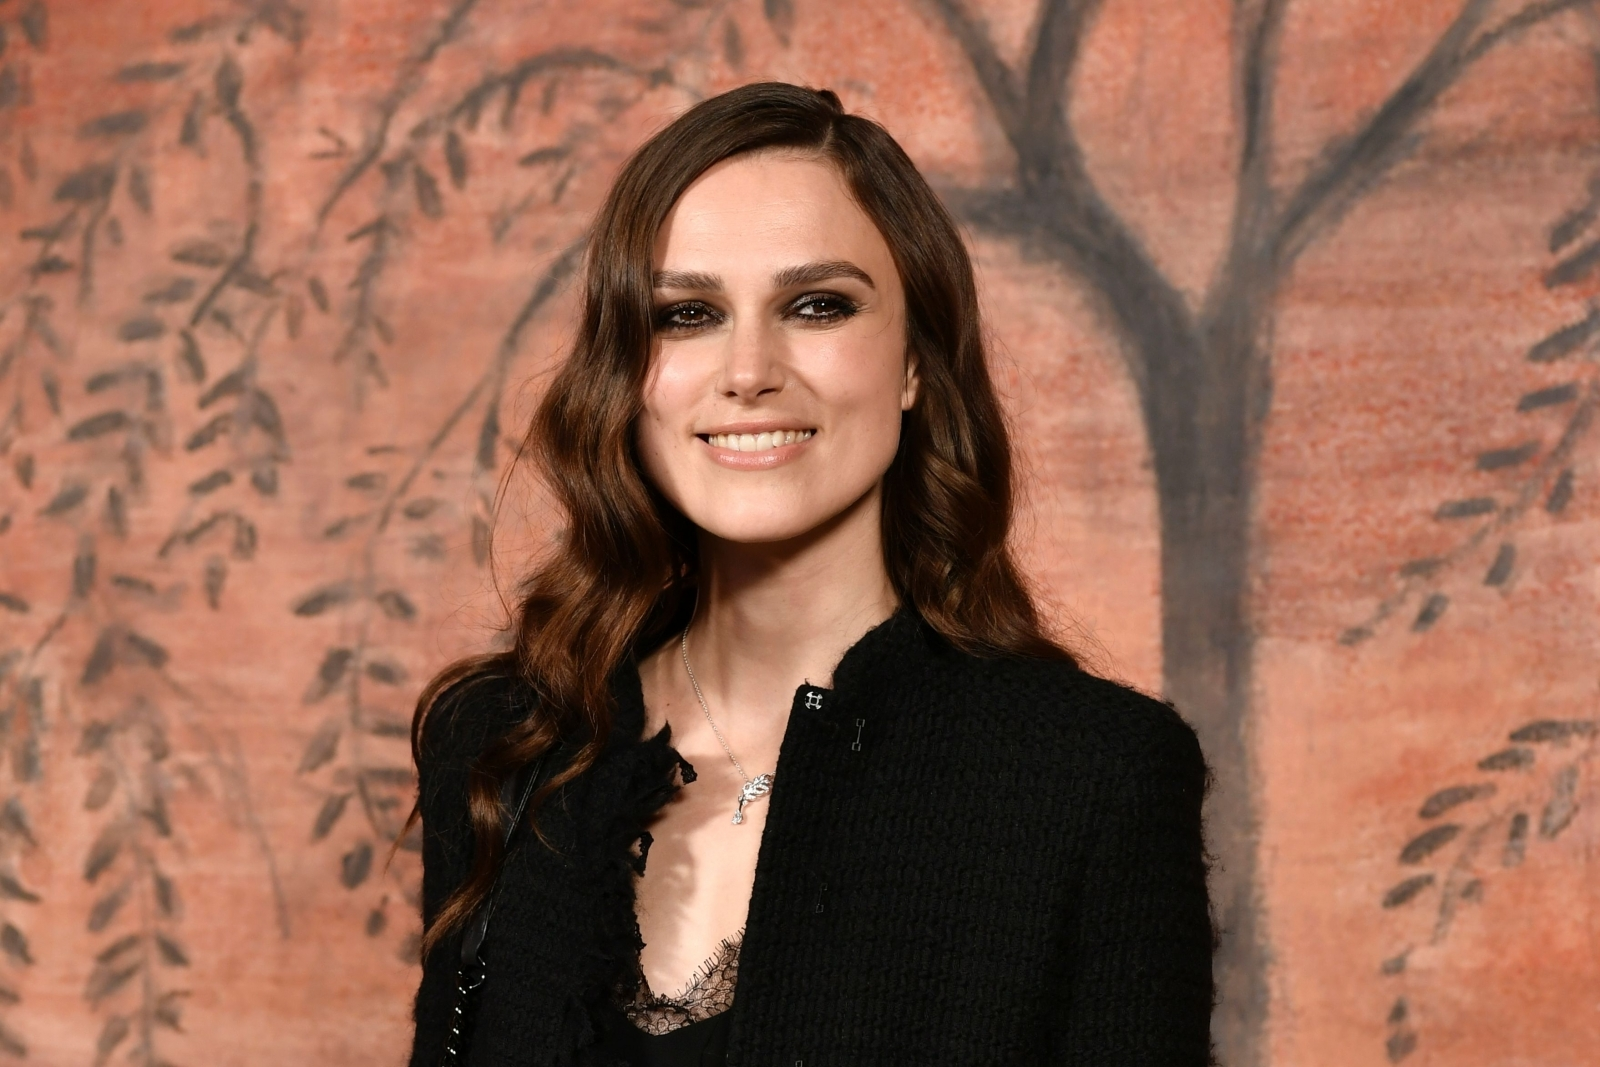 Keira Knightley Is Sick Of Female Characters Getting Raped All The Time